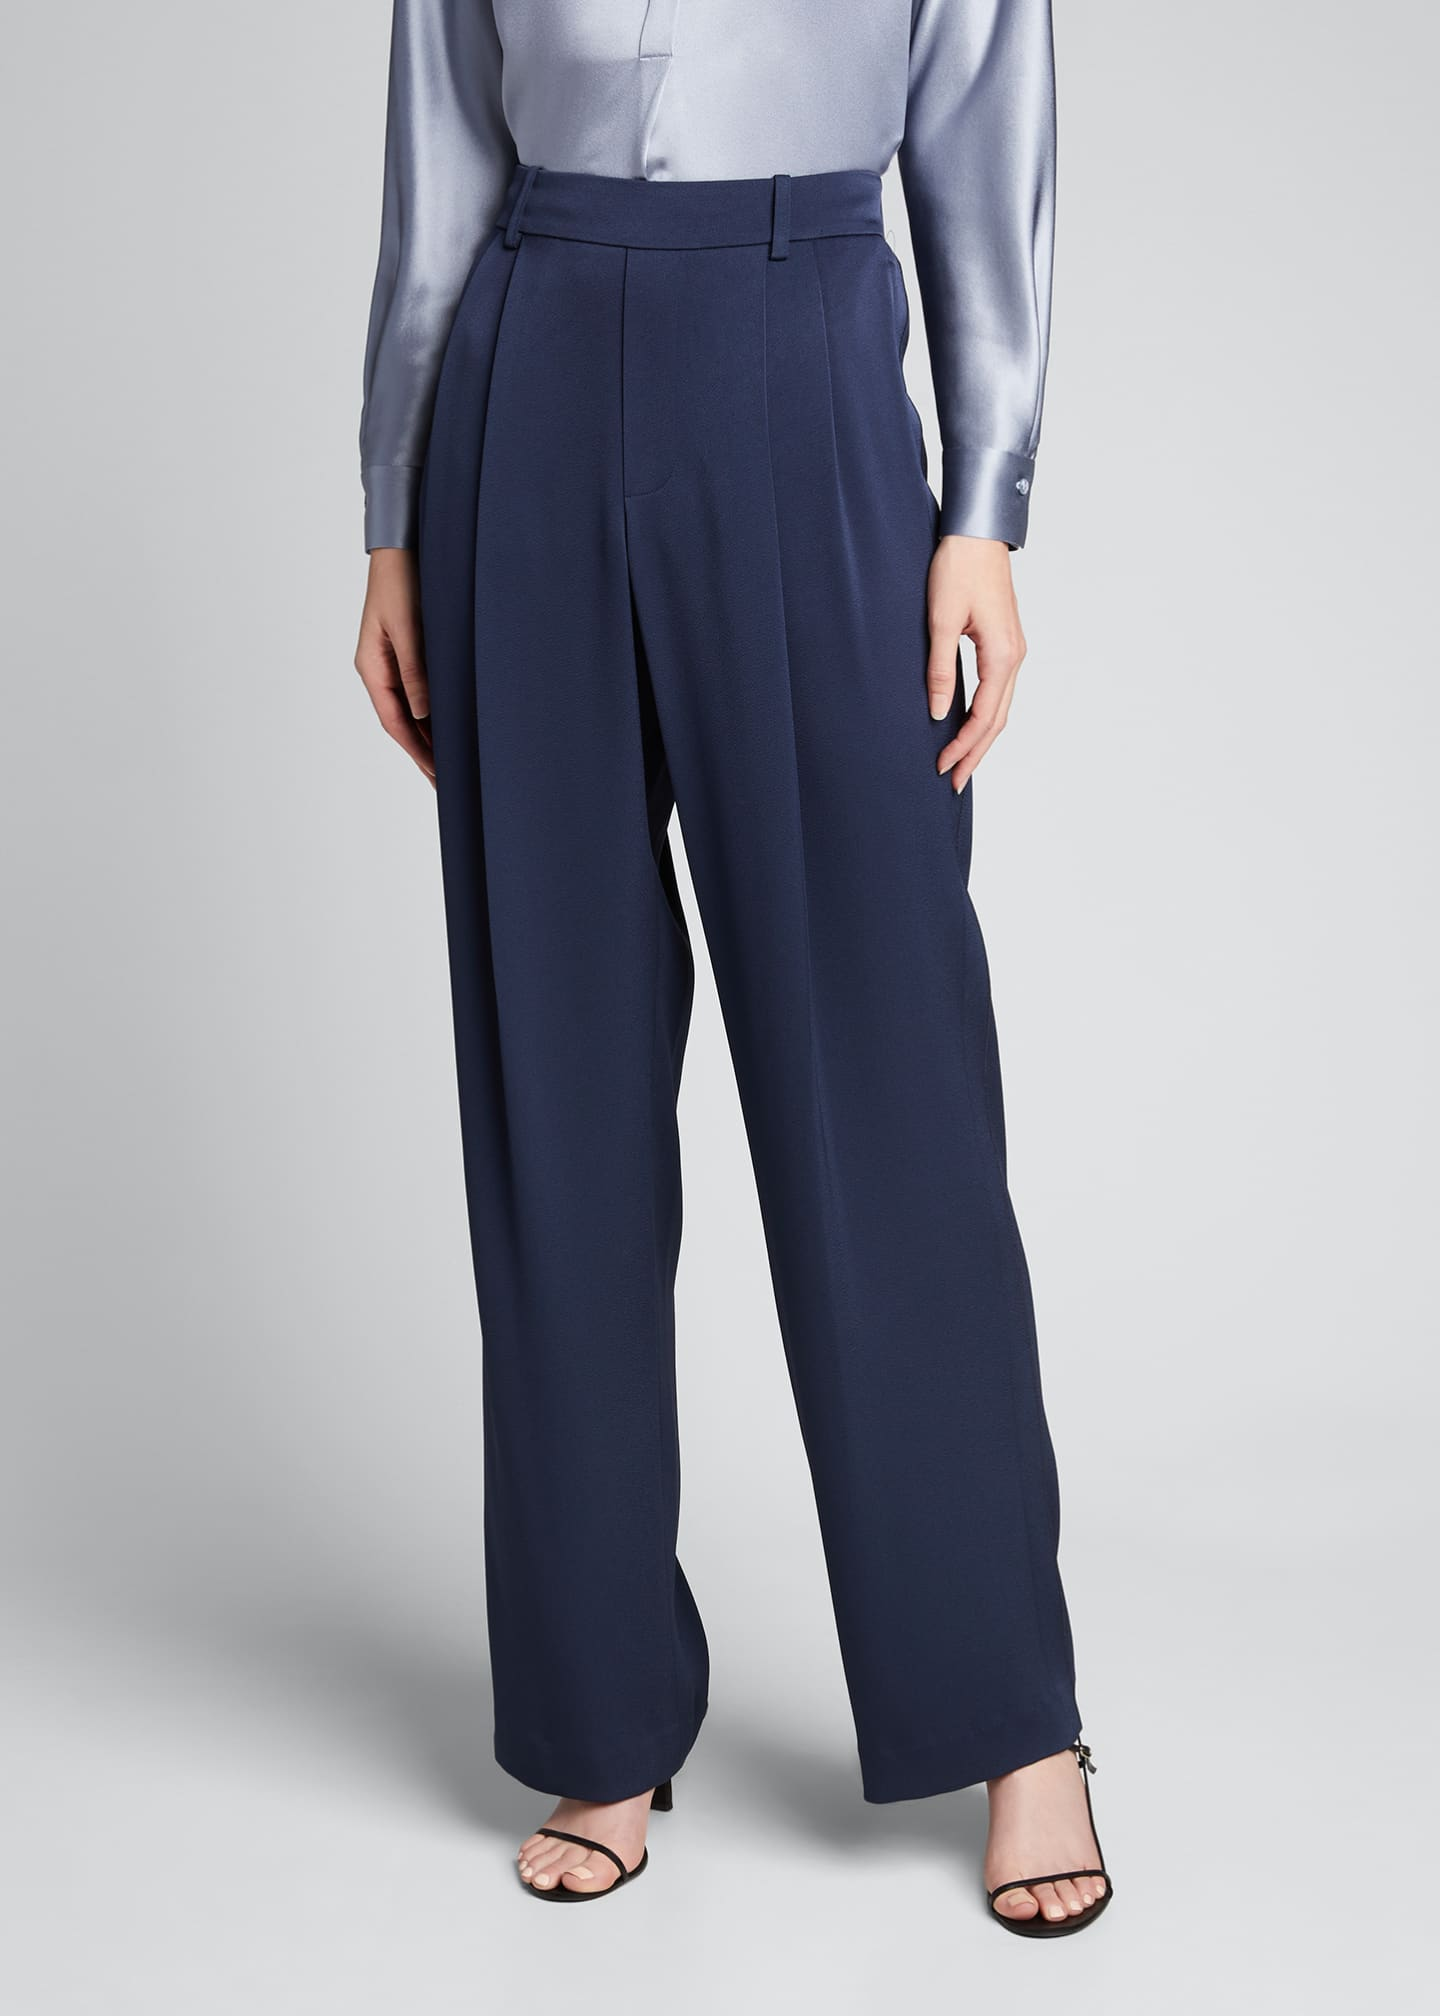 Image 3 of 5: Wide-Leg Pull-On Pants